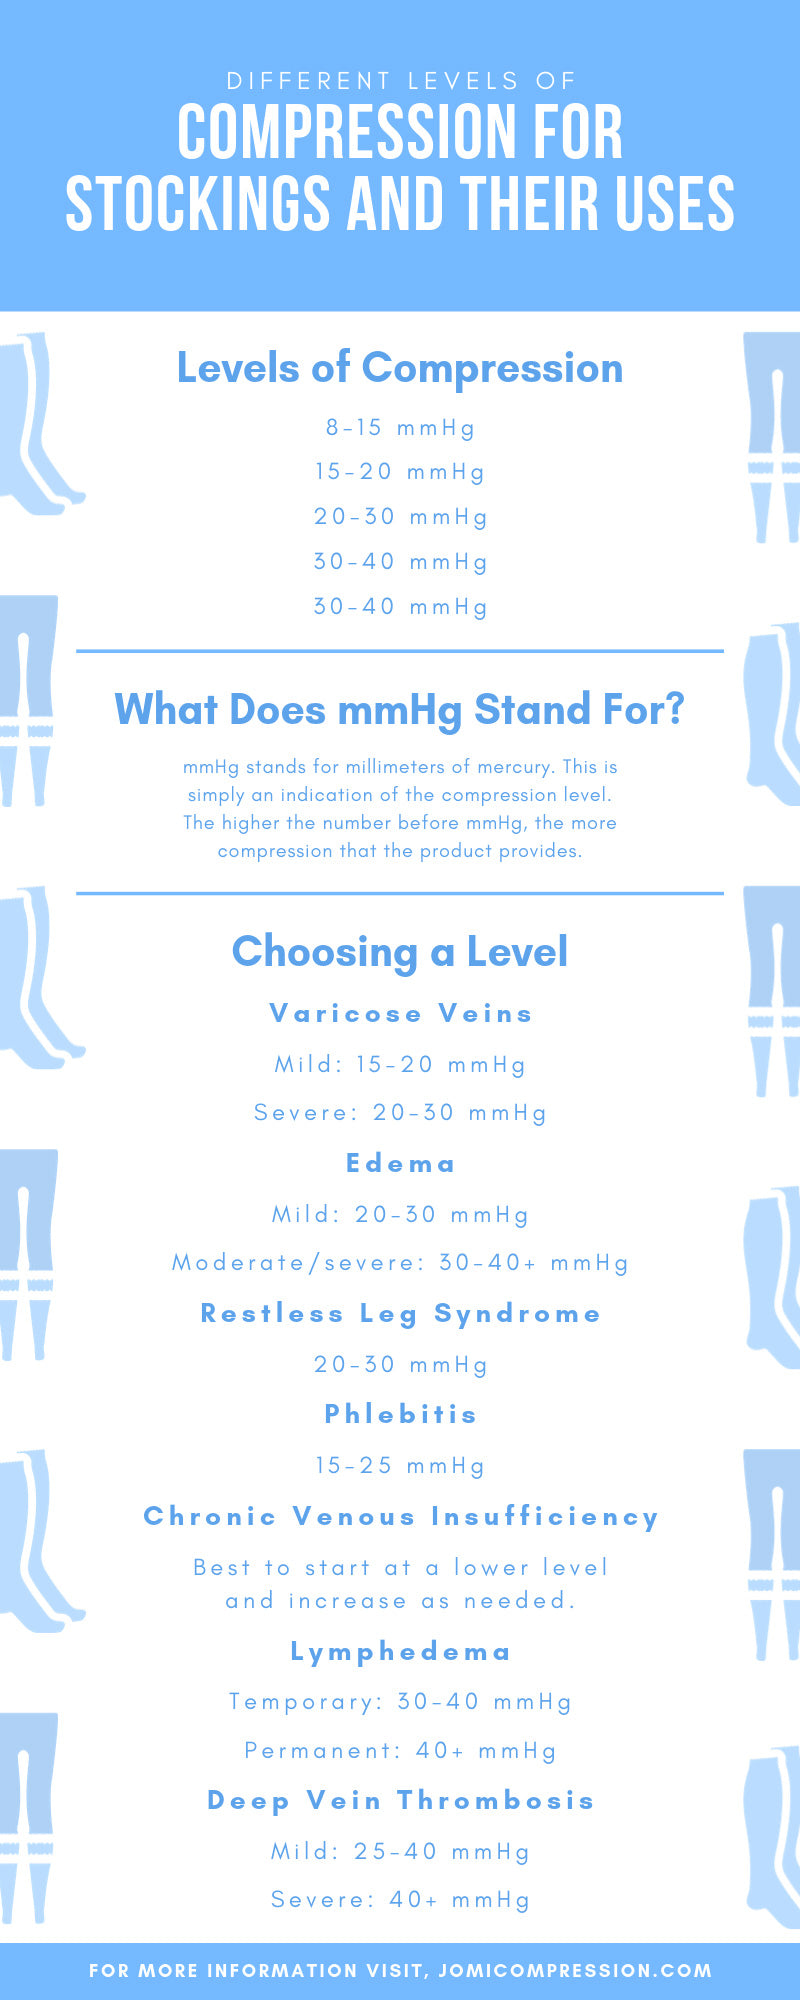 Different Levels of Compression for Stockings and Their Uses infographic